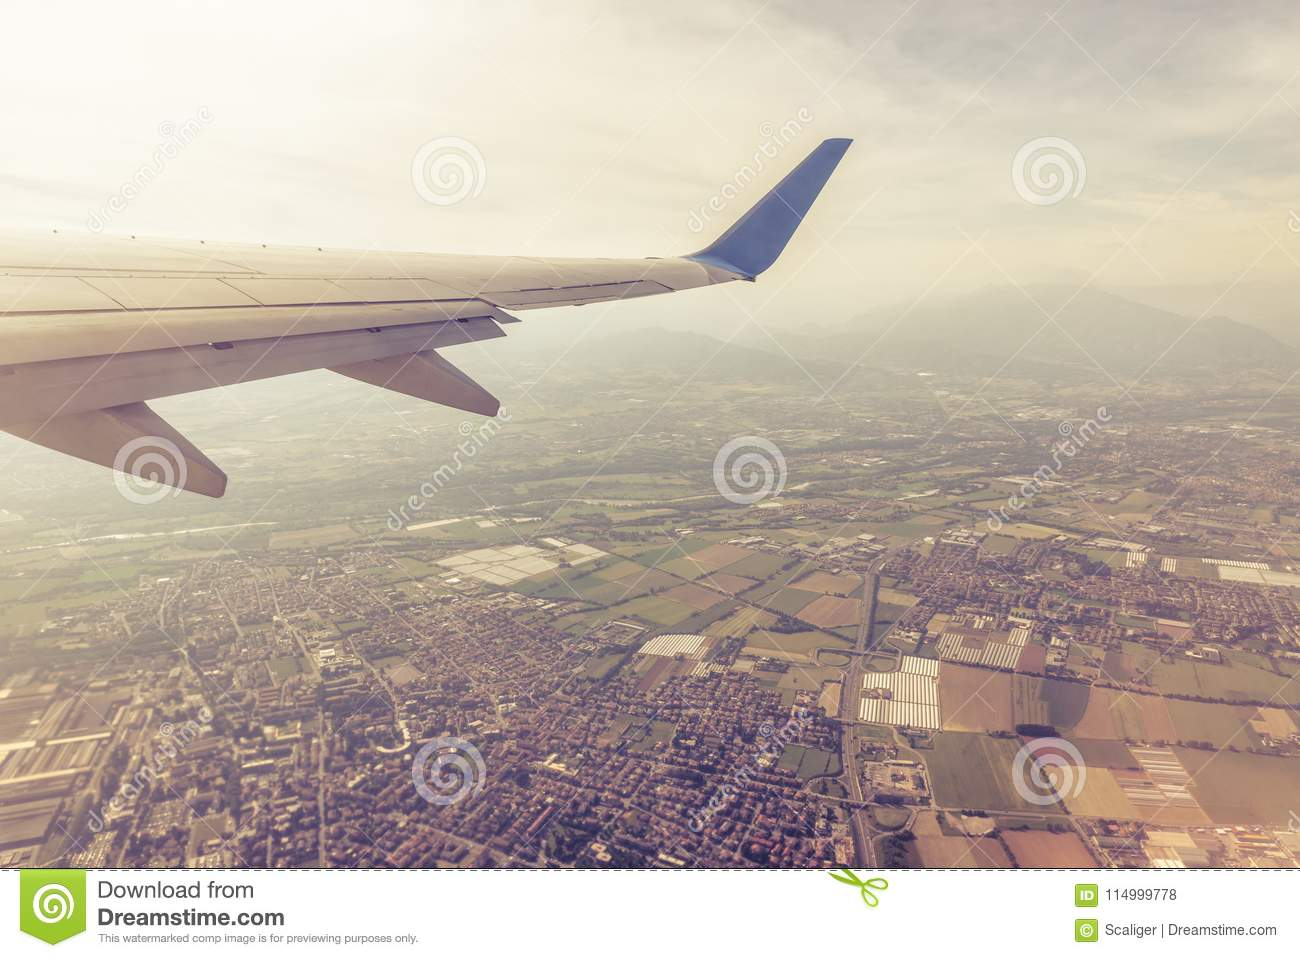 Download Wing Of An Airplane Flying Above Towns And Villages Stock Photo - Image of altitude, airplane: 114999778